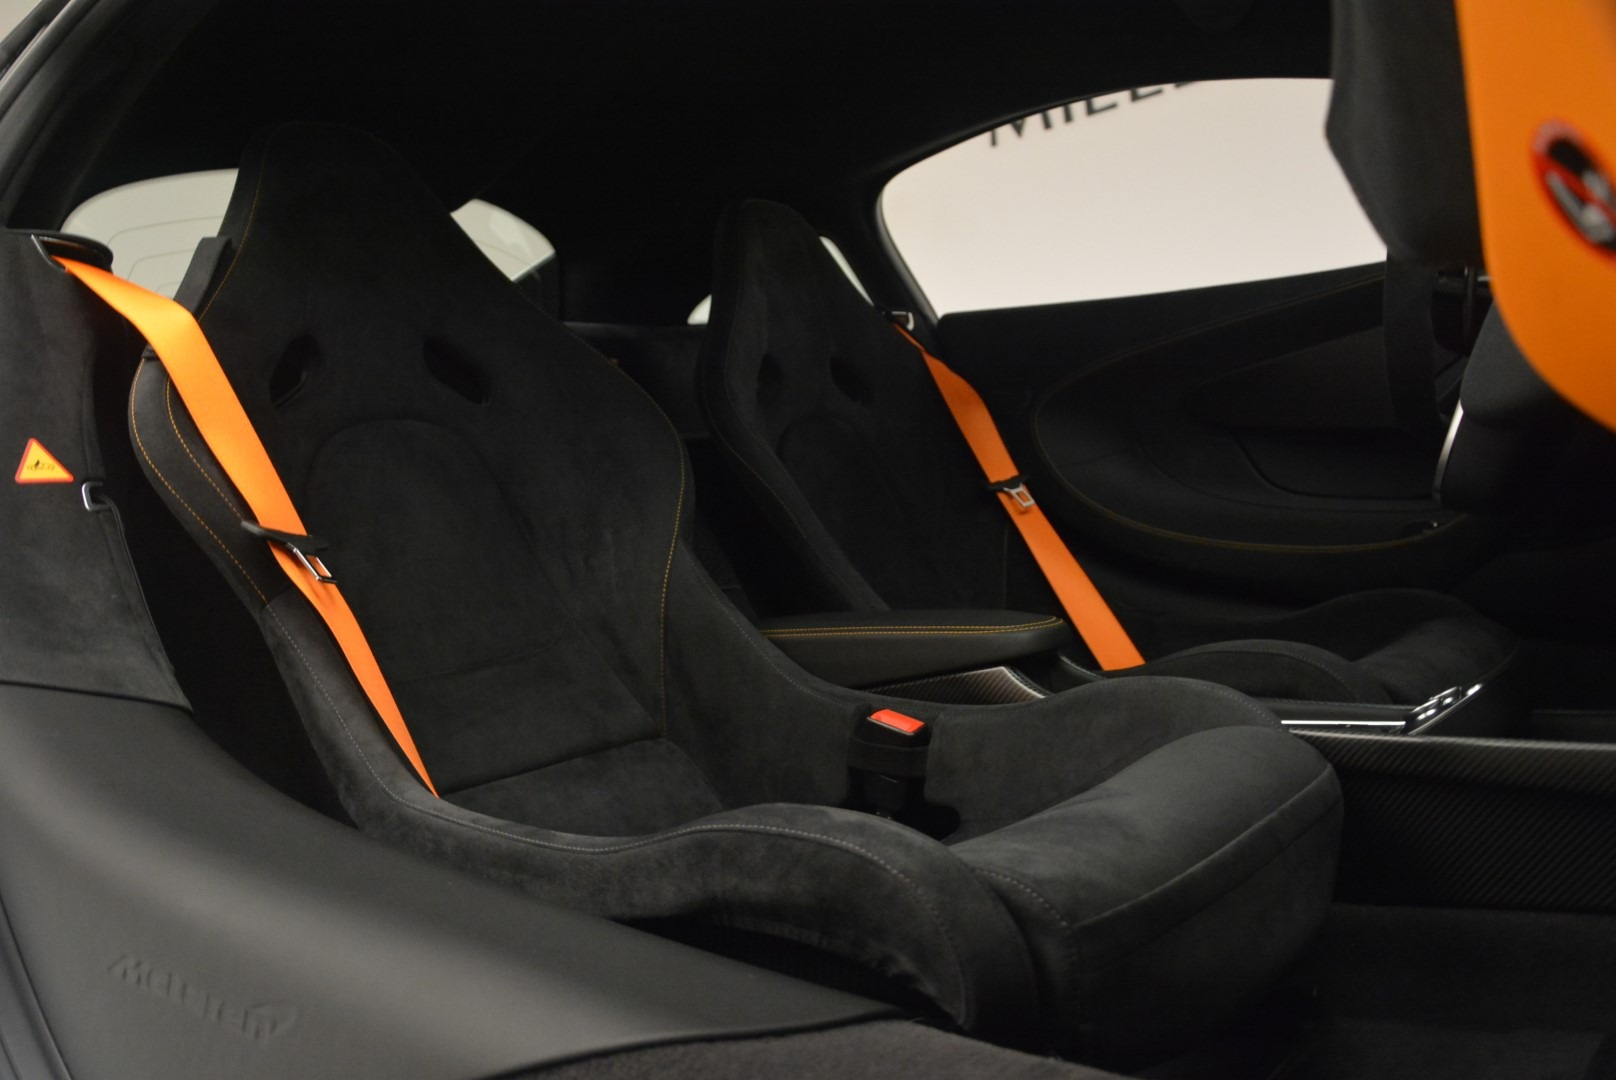 Used 2018 McLaren 570S Track Pack For Sale In Westport, CT 2290_p22